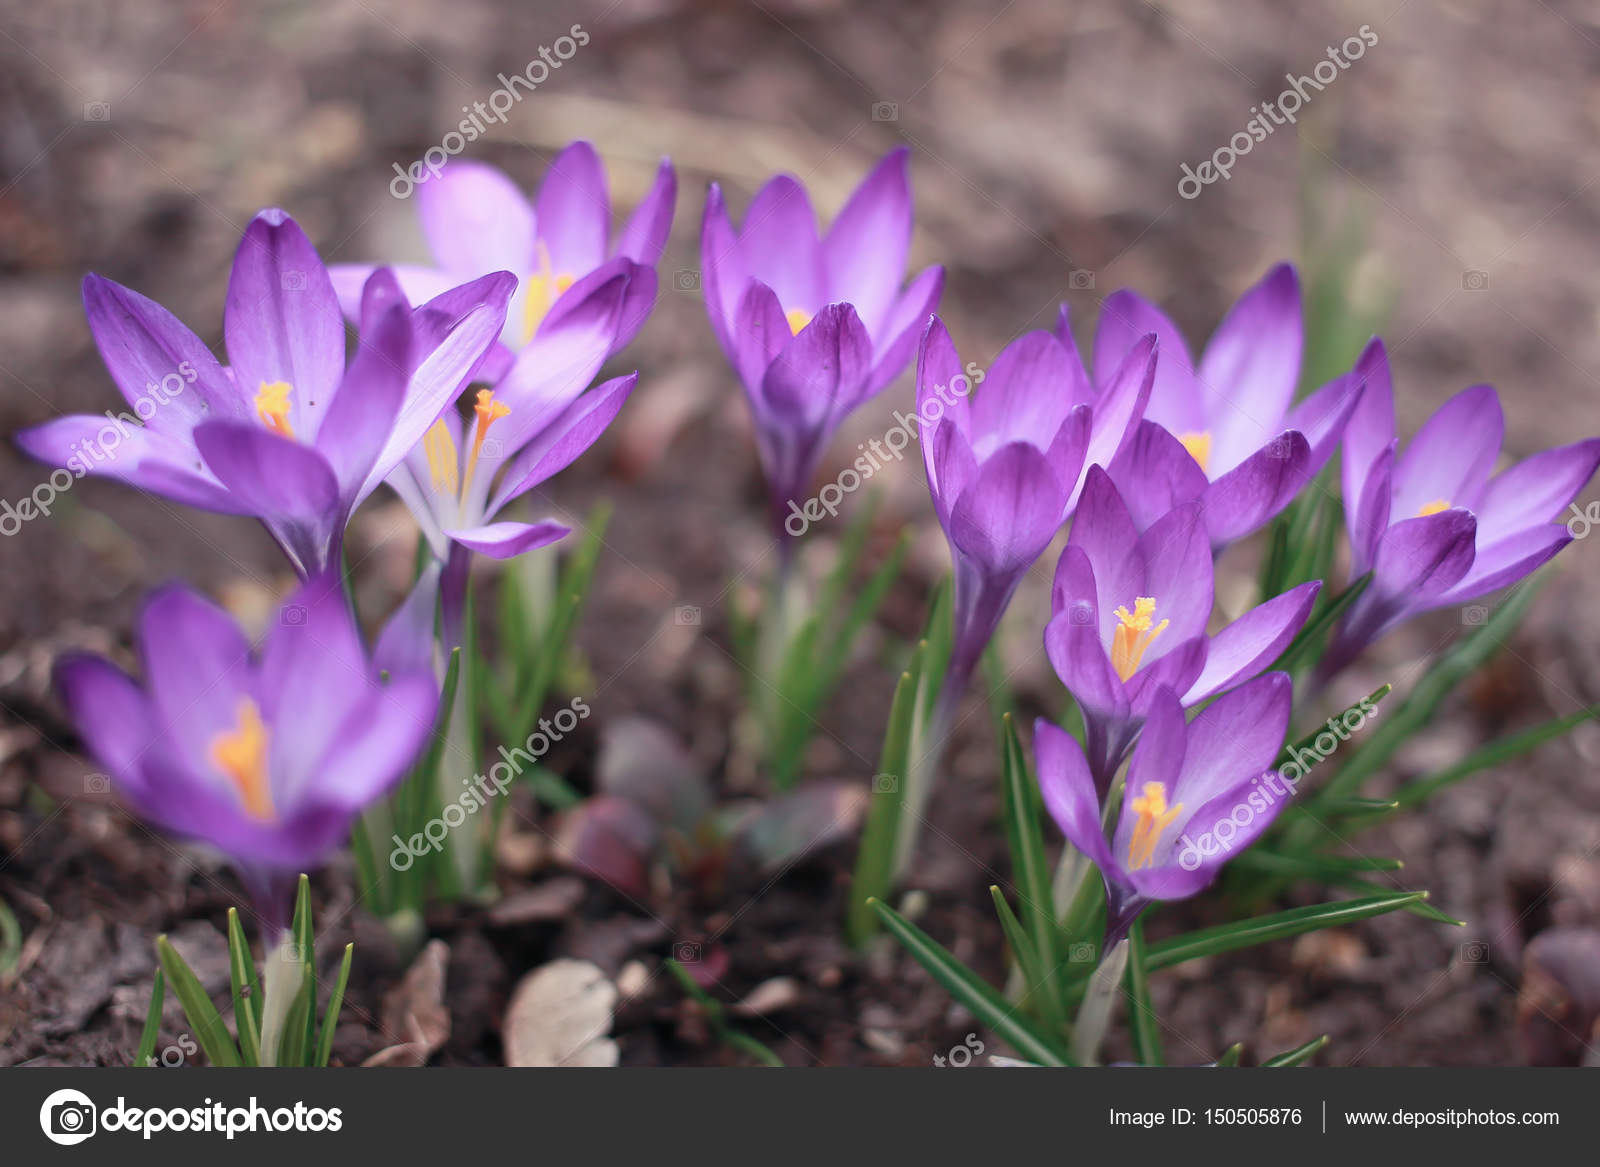 Crocuses Small Spring Flowering Plant With Purple Flowers Stock